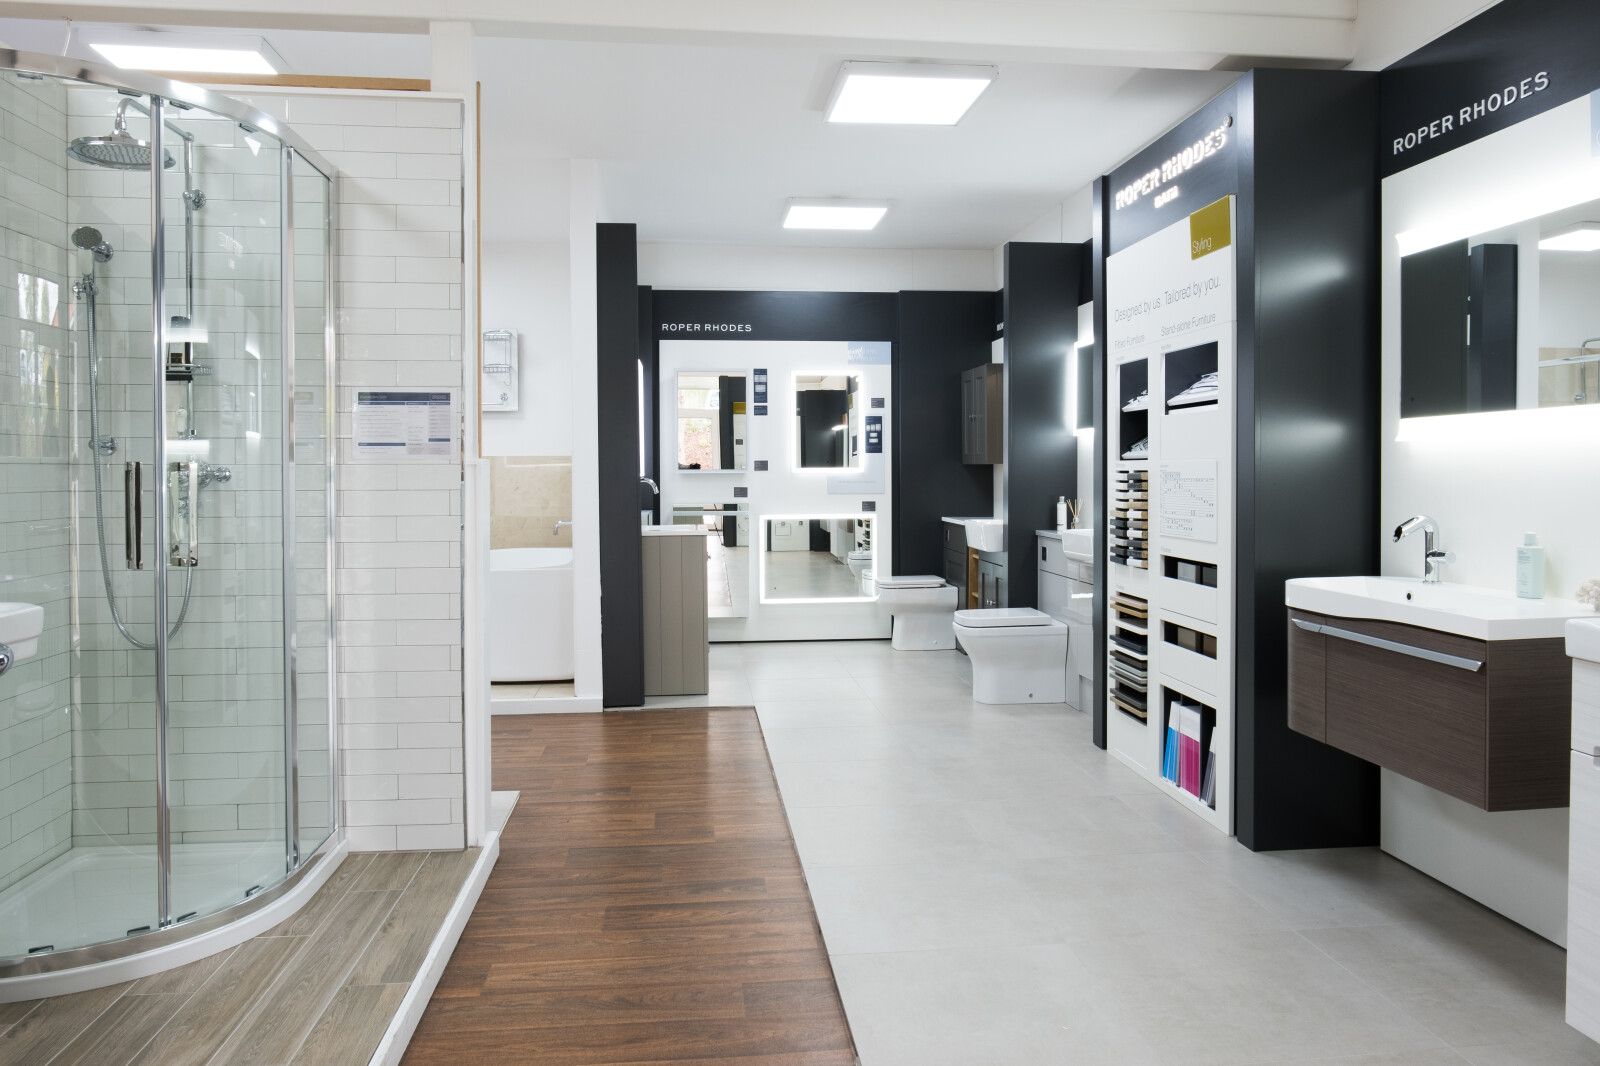 Sanctuary Bathrooms showroom downstairs inside image leeds yorkshire